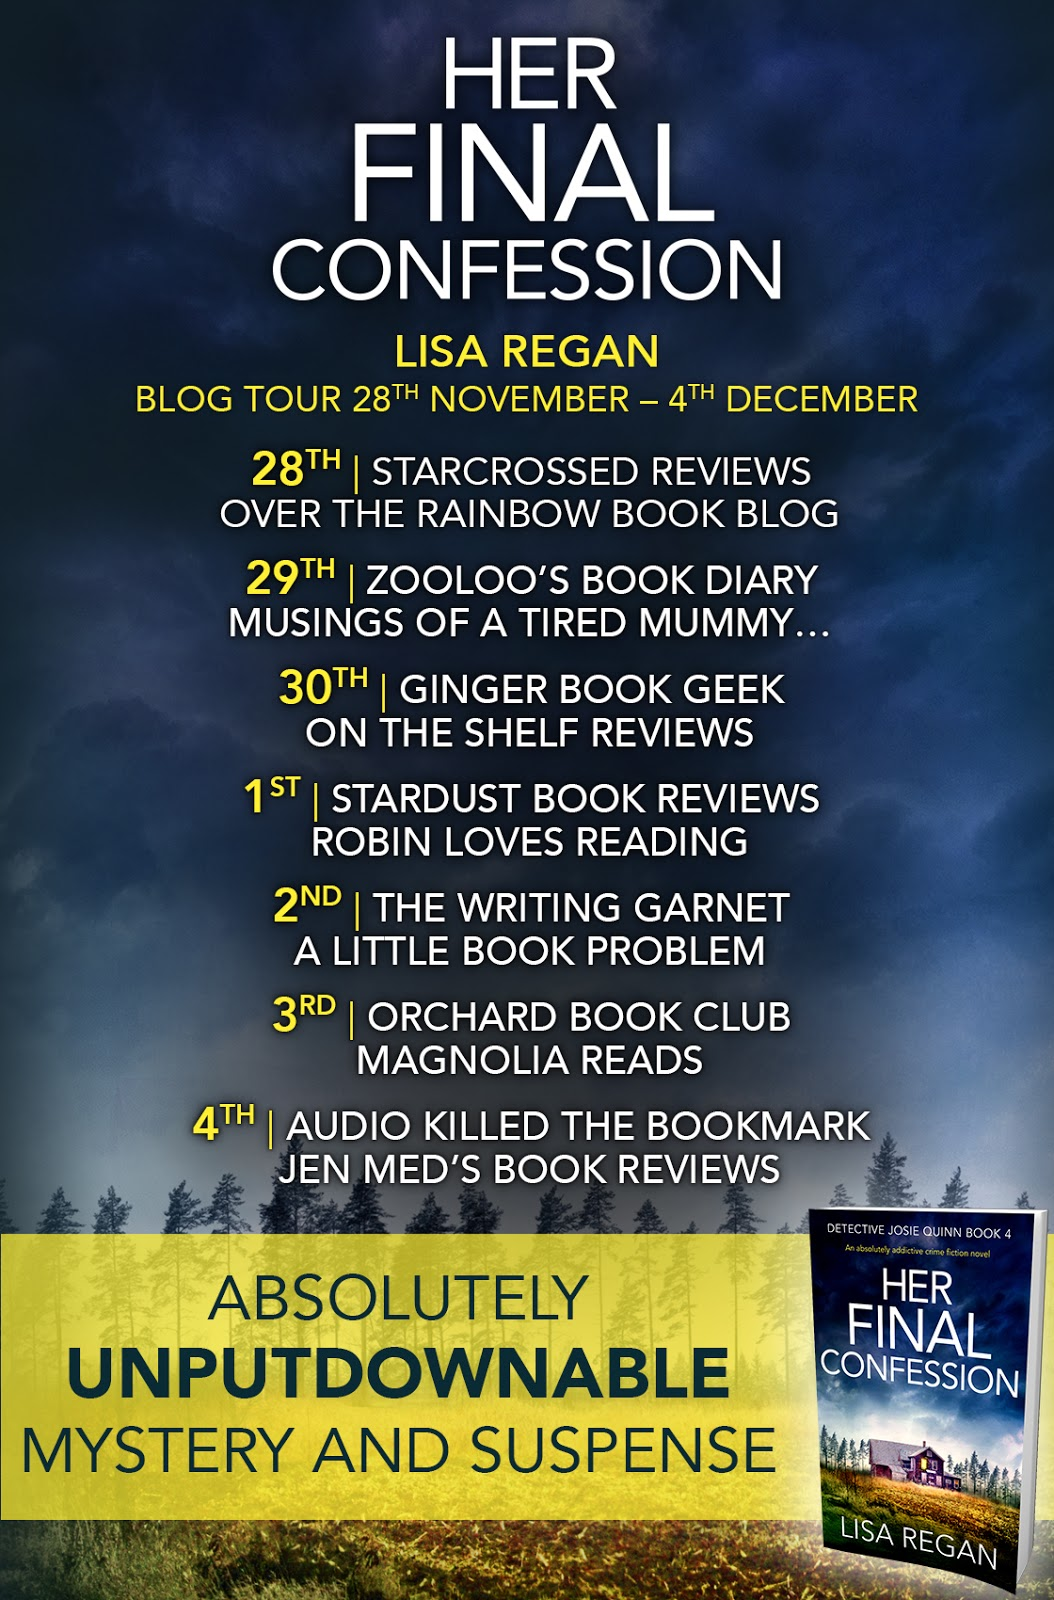 Today is my stop on the Blog Tour for Her Final Confession by Lisa Regan.